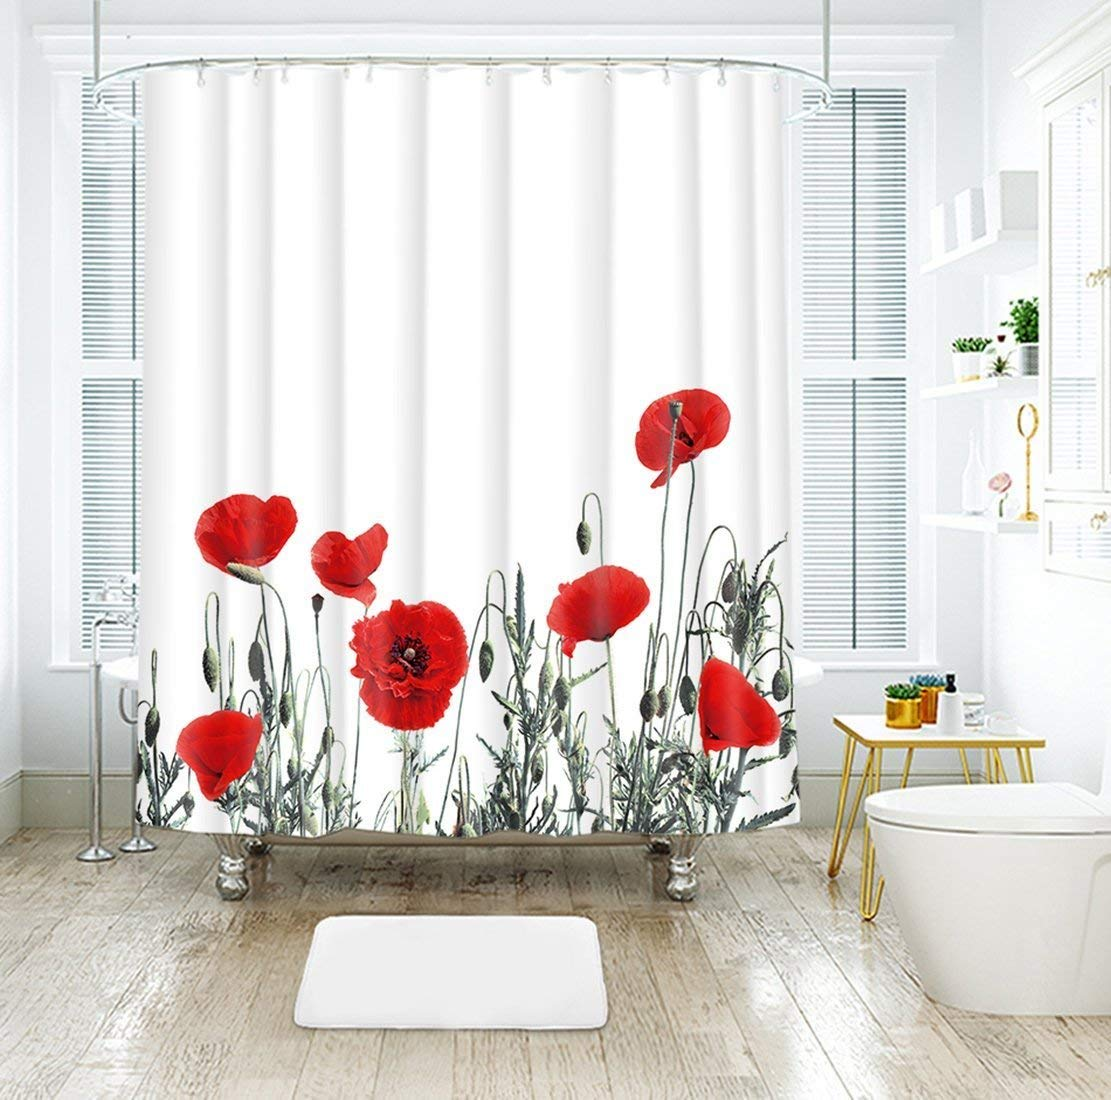 Us 17 38 25 Off Red Poppy Floral Fabric Shower Curtain Bath Curtain Meadow Wildflower Spring Season Painting Fabric Bathroom Bath Curtains In Shower